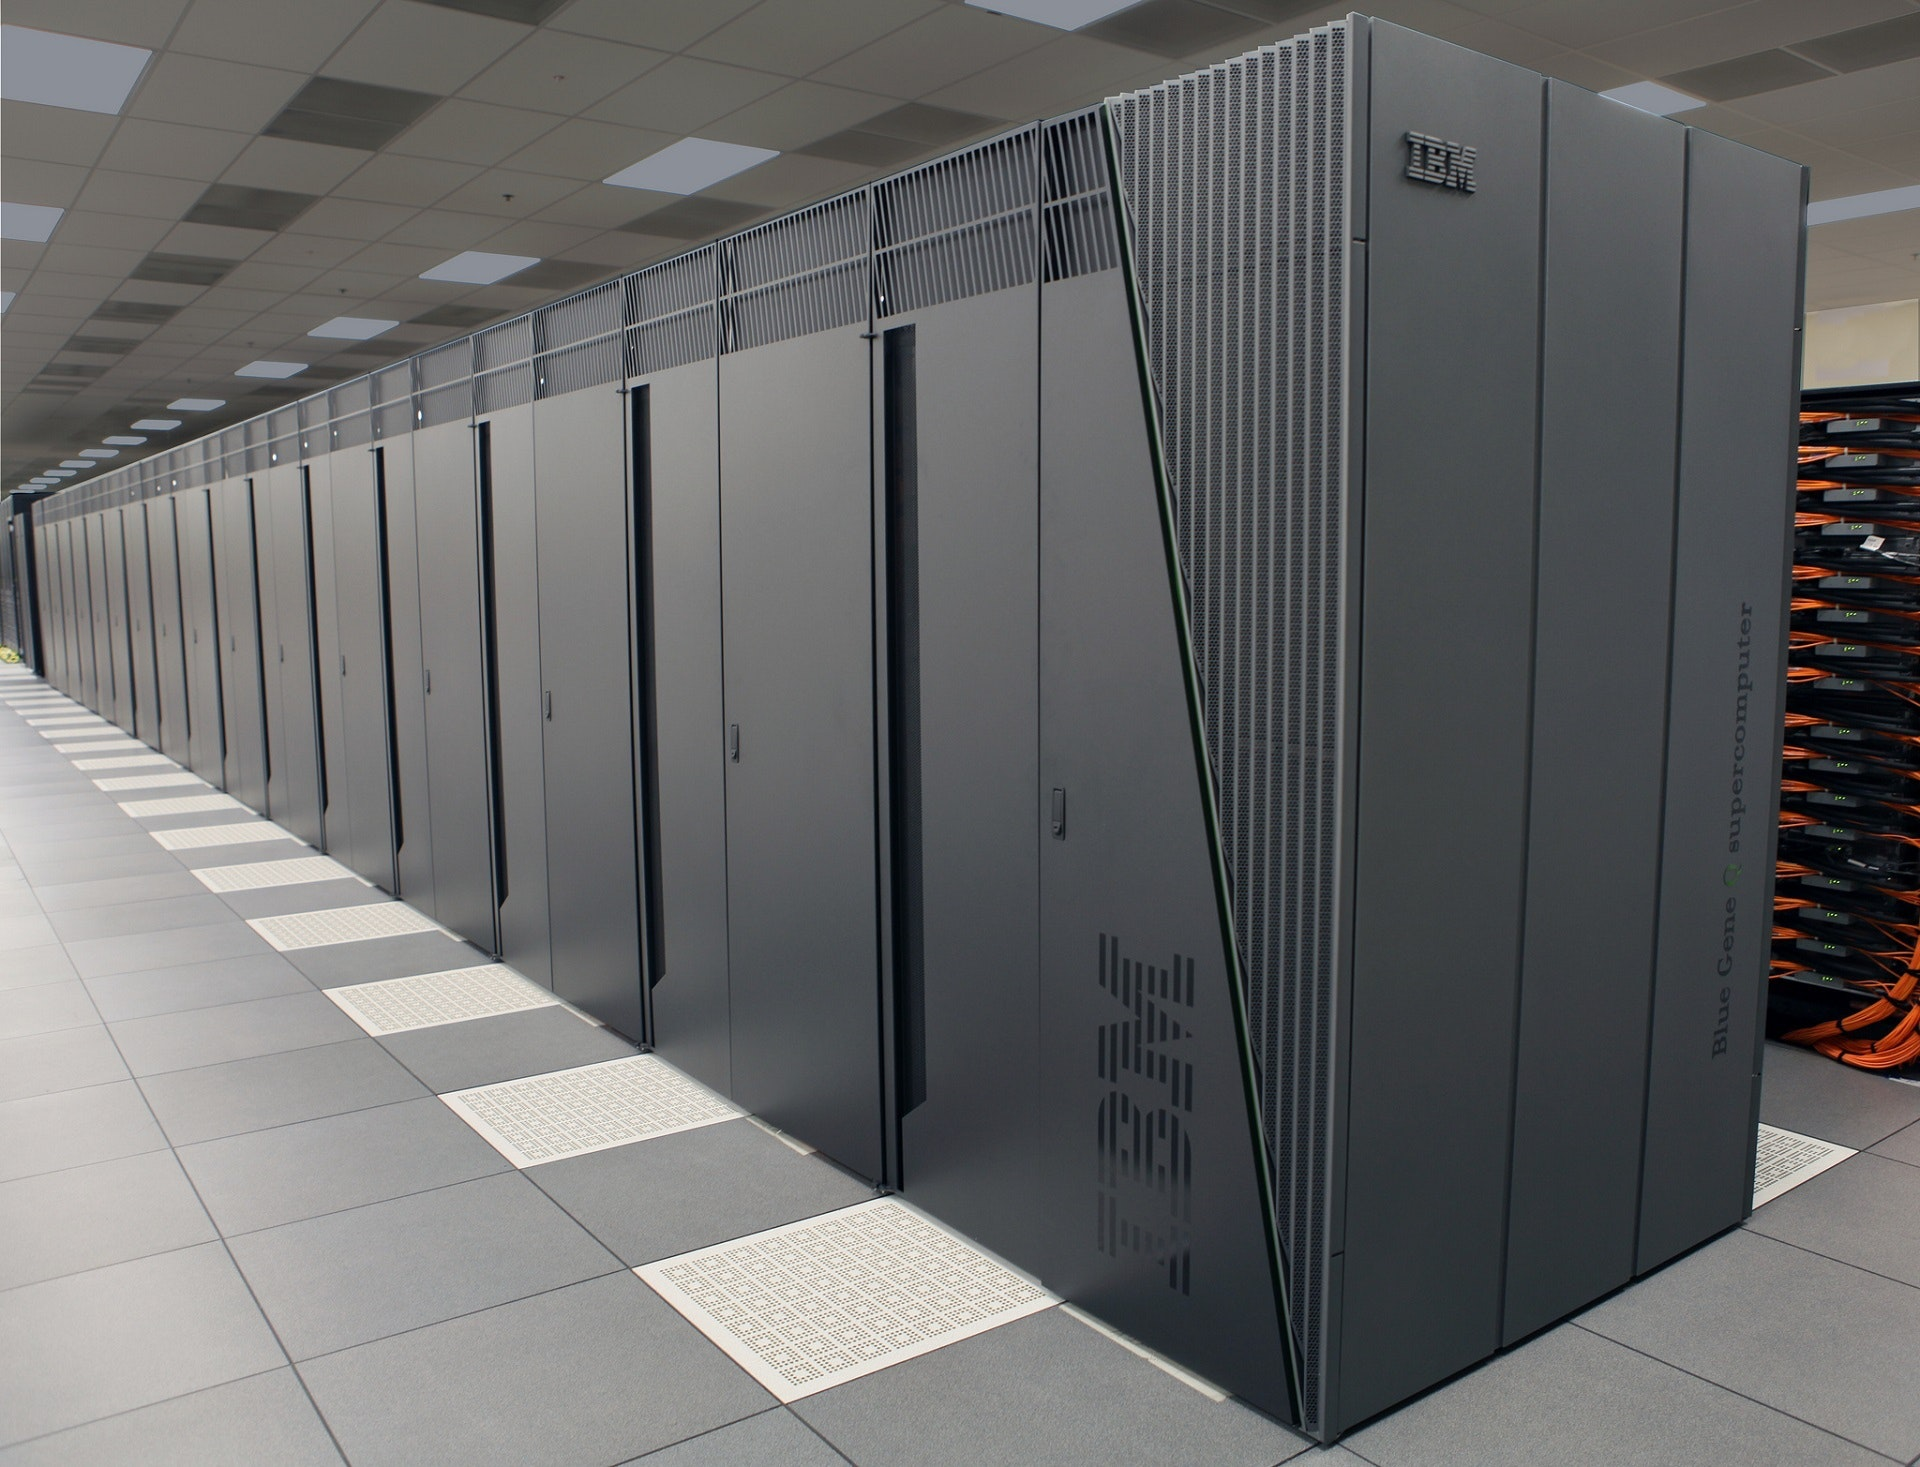 airport-center-computing-236093.jpg